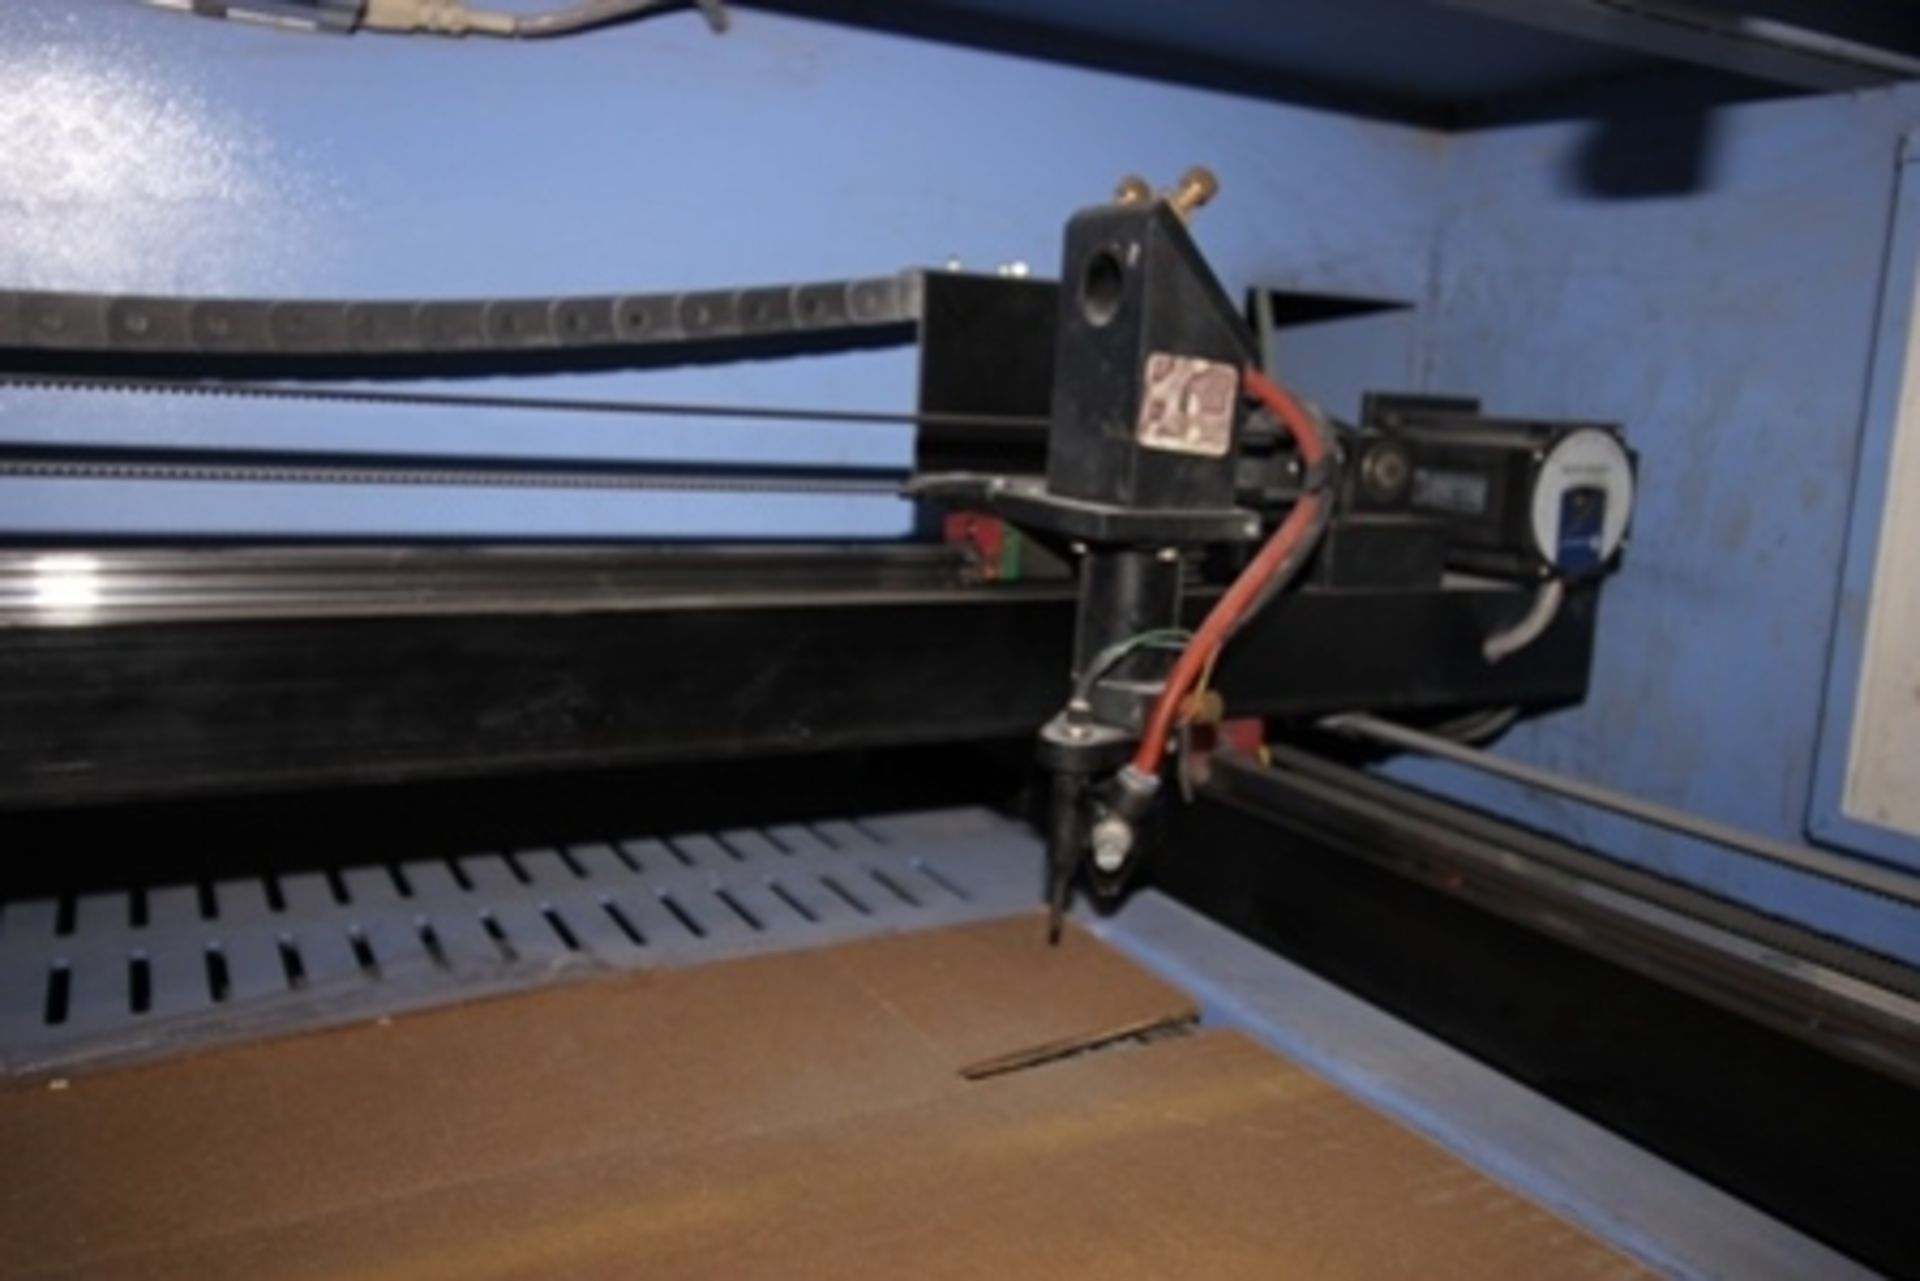 Lot 8 - 2016 Phillican CO2 laser engraver and cutting machine, model 6090.